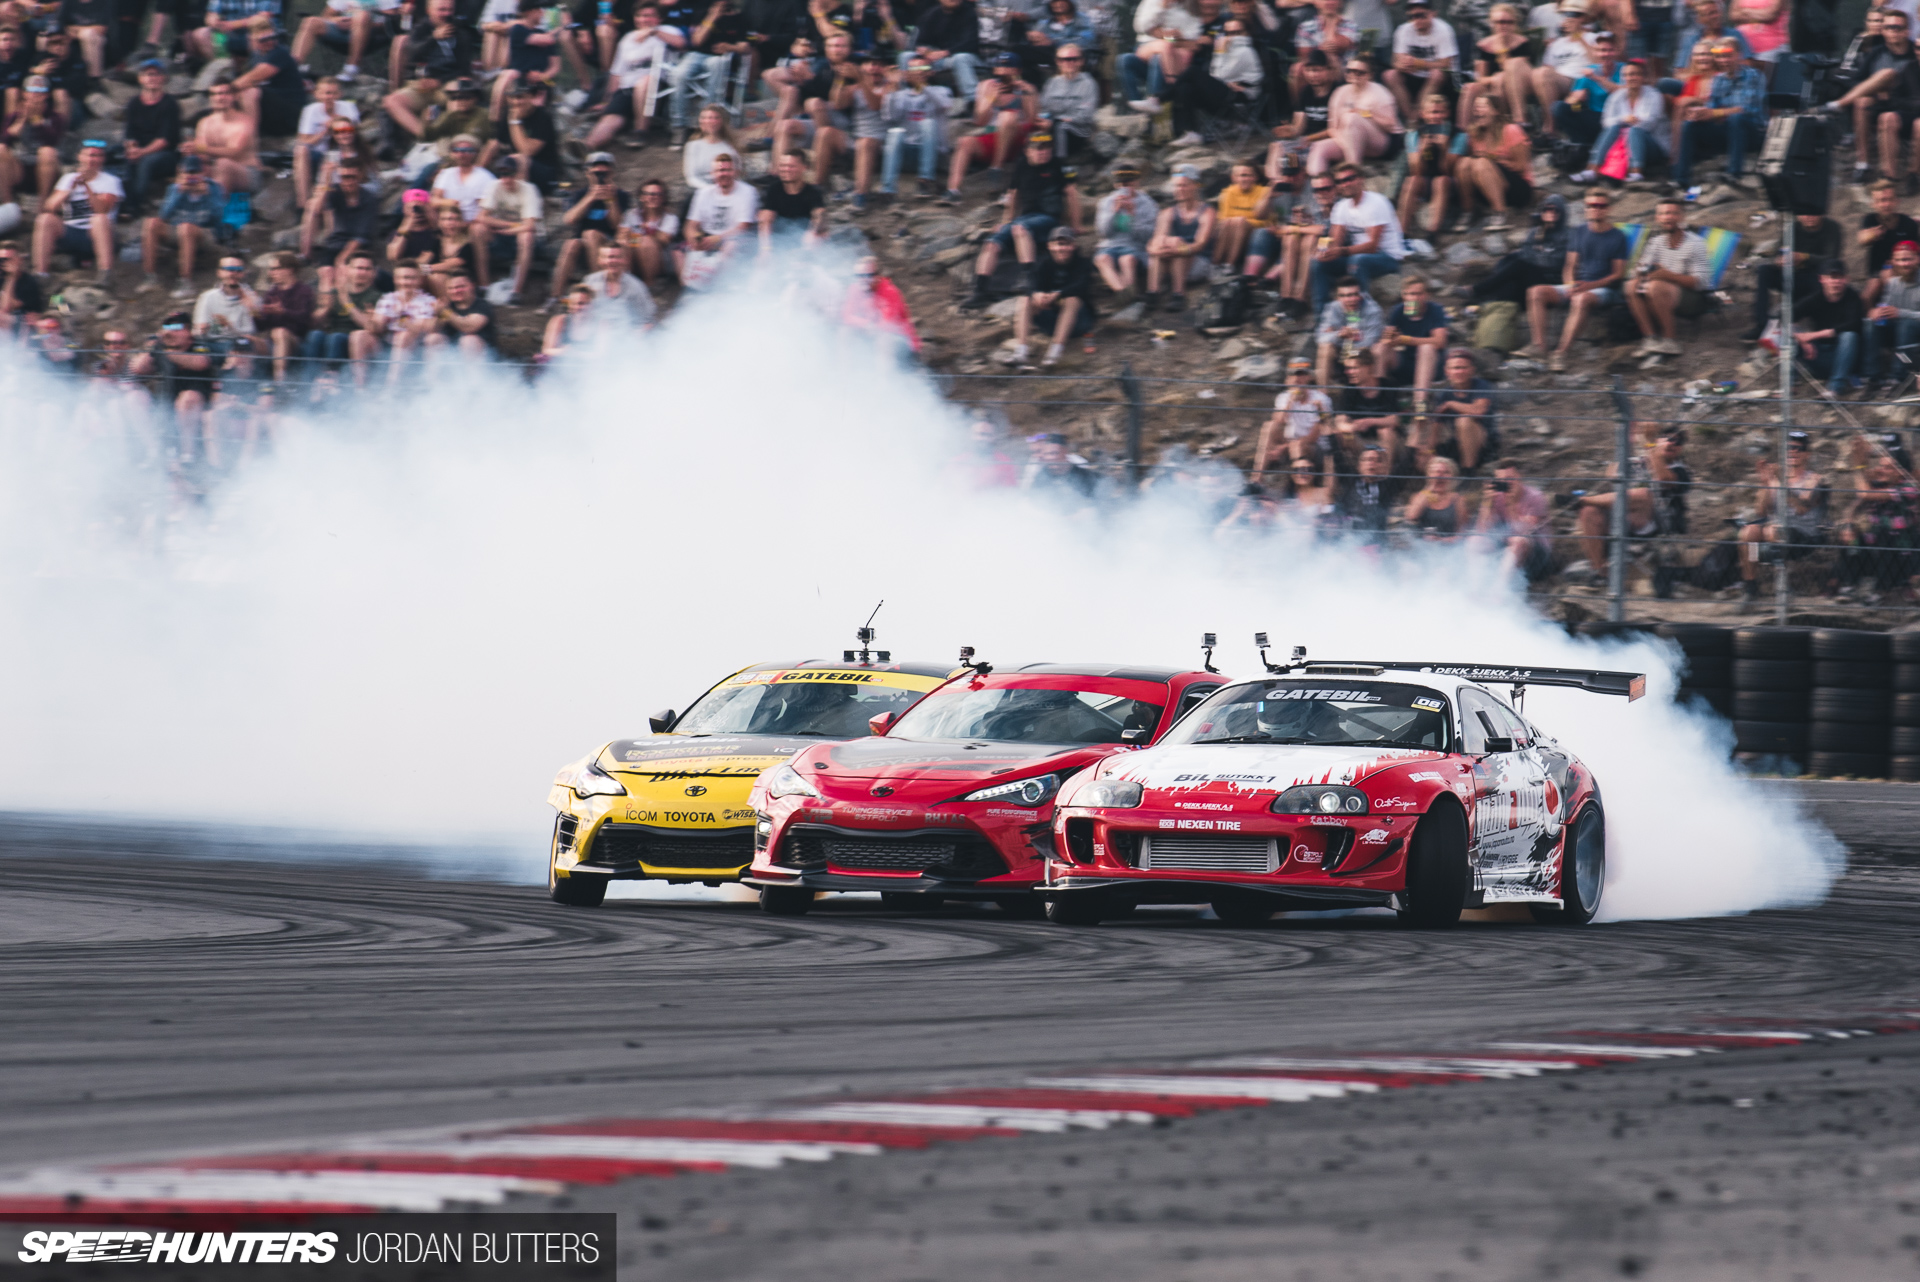 The Official Gatebil 2018 Film Will Give You Goosebumps - Speedhunters